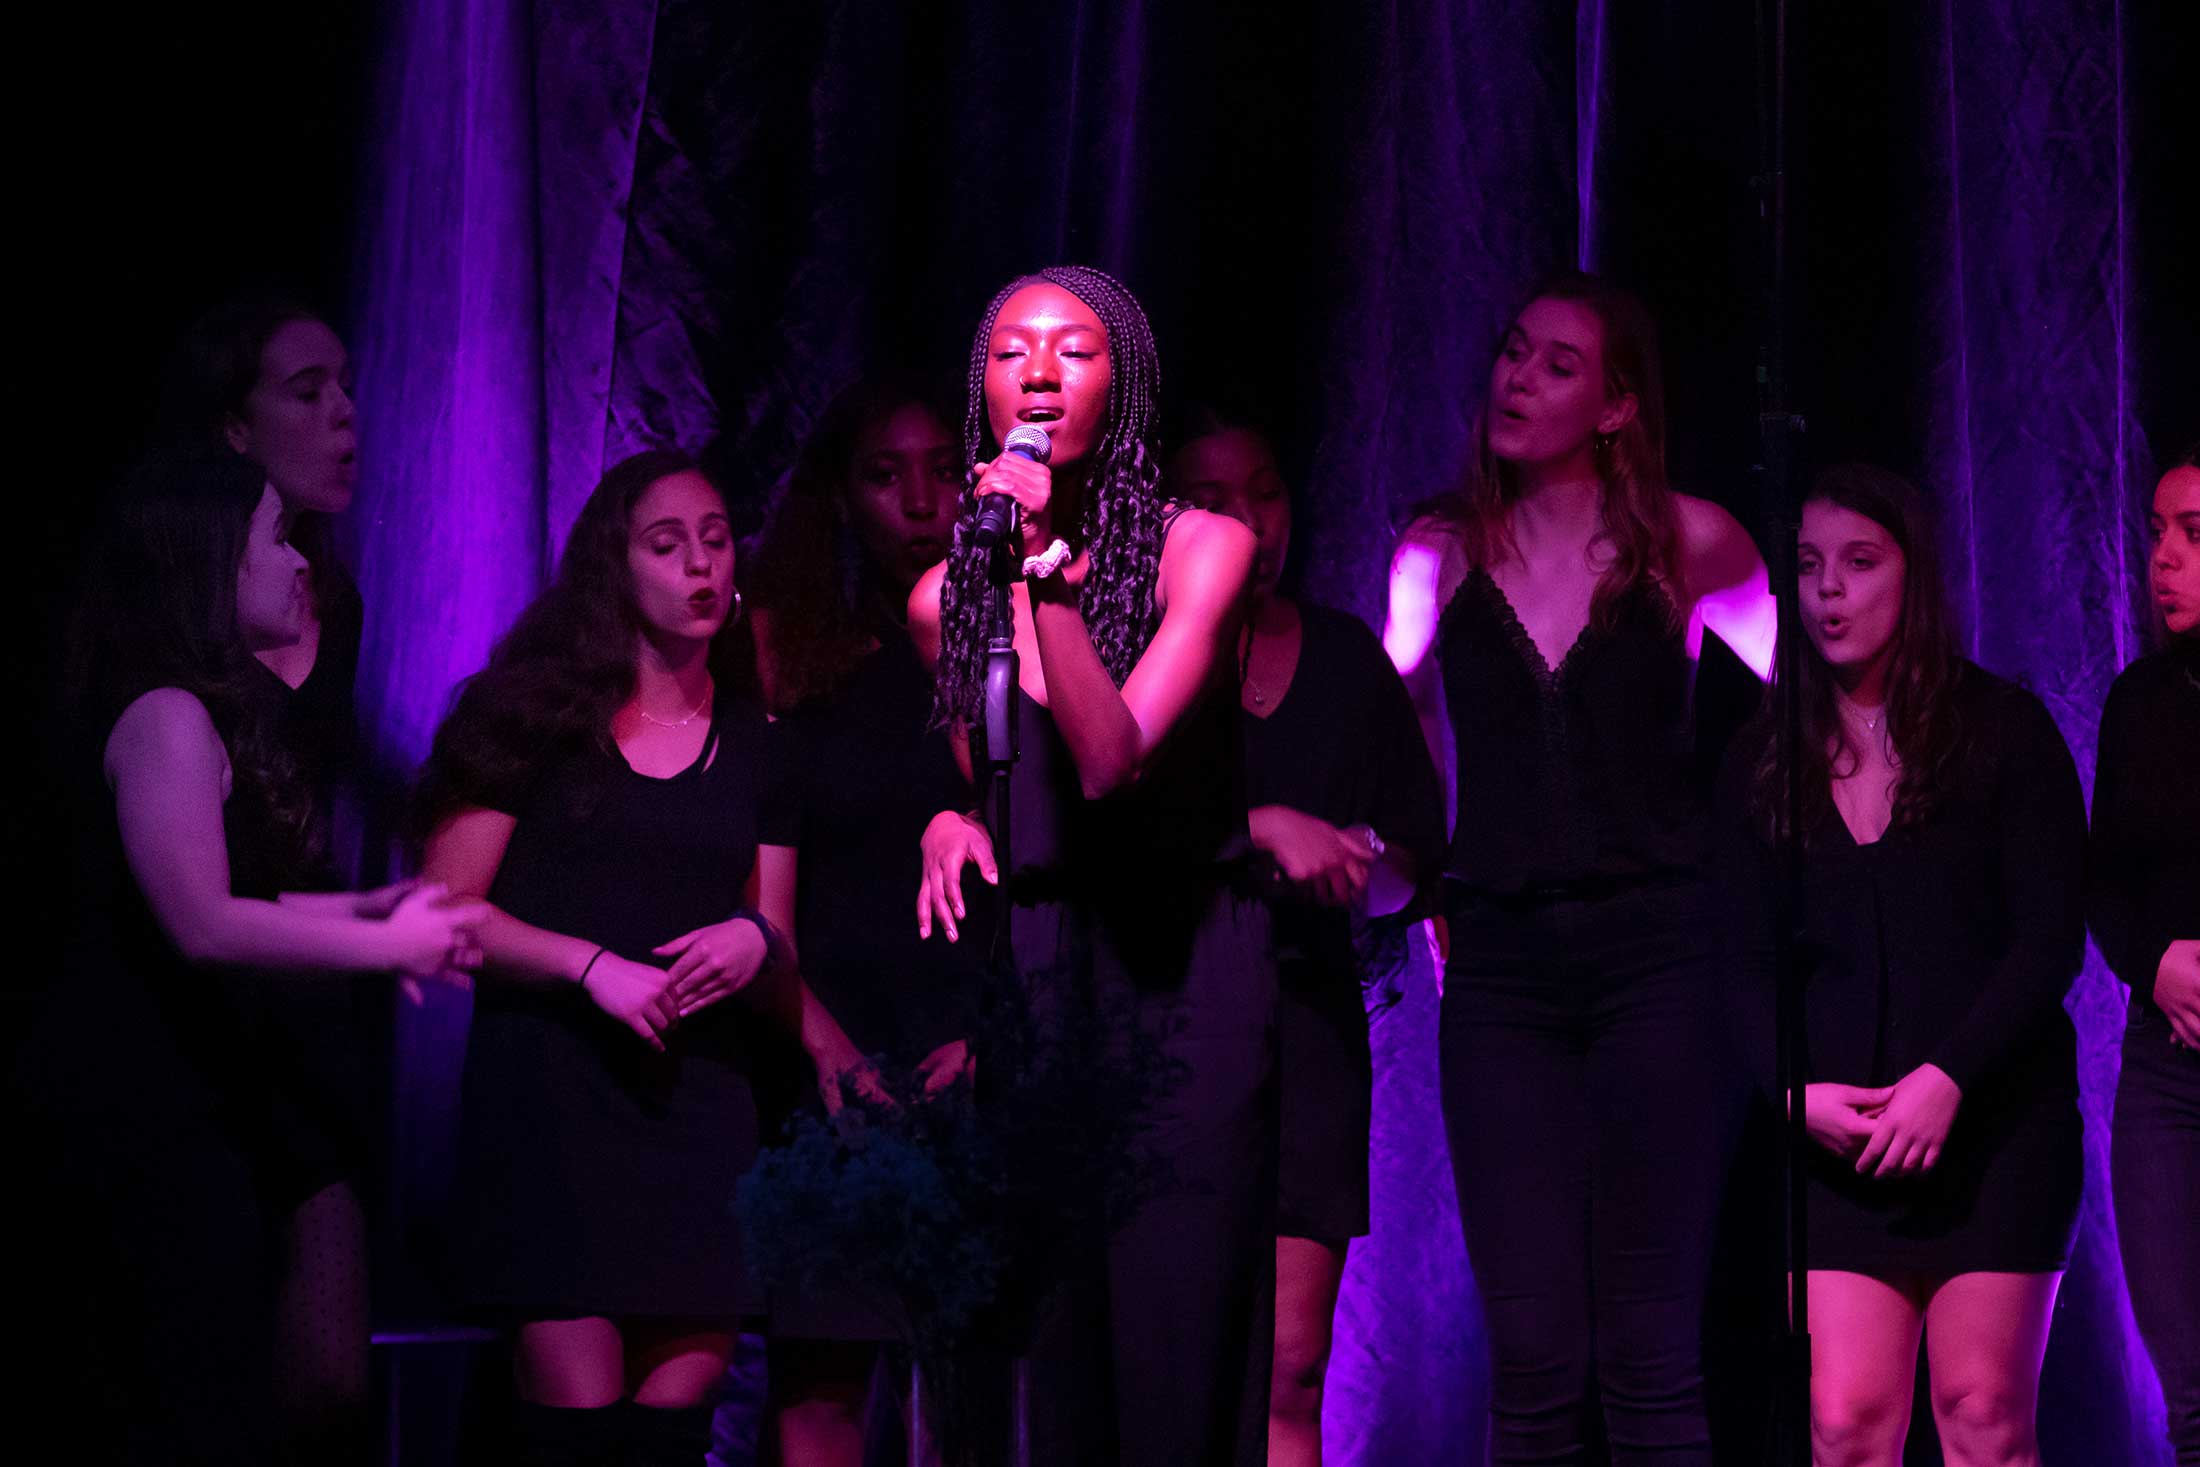 An all female a capella group performing